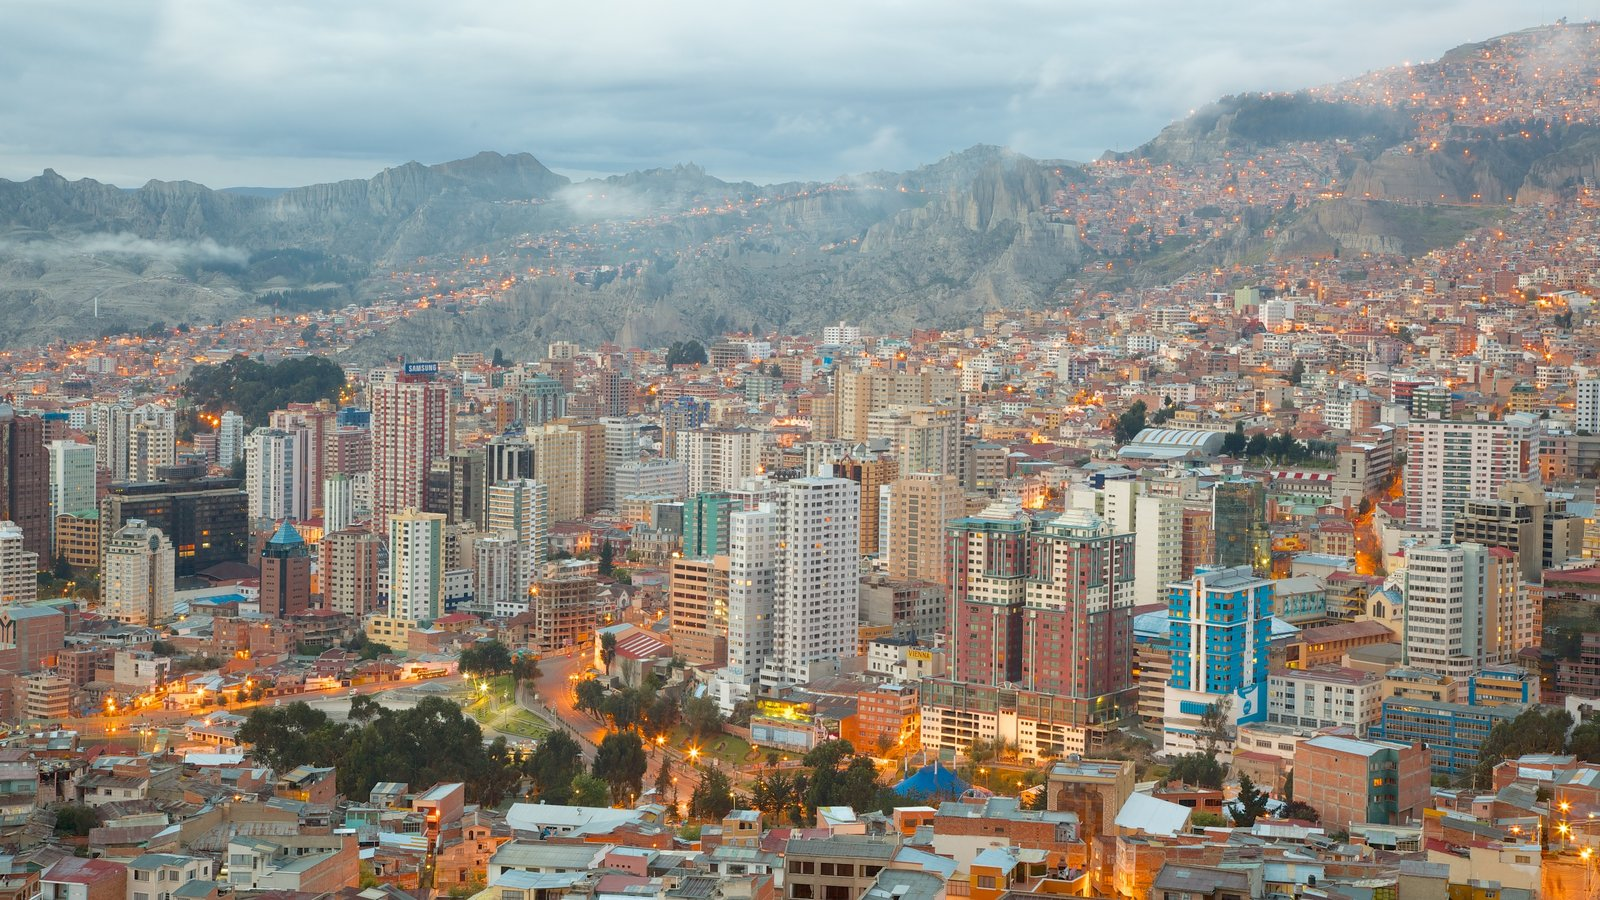 La Paz featuring a city and a high rise building